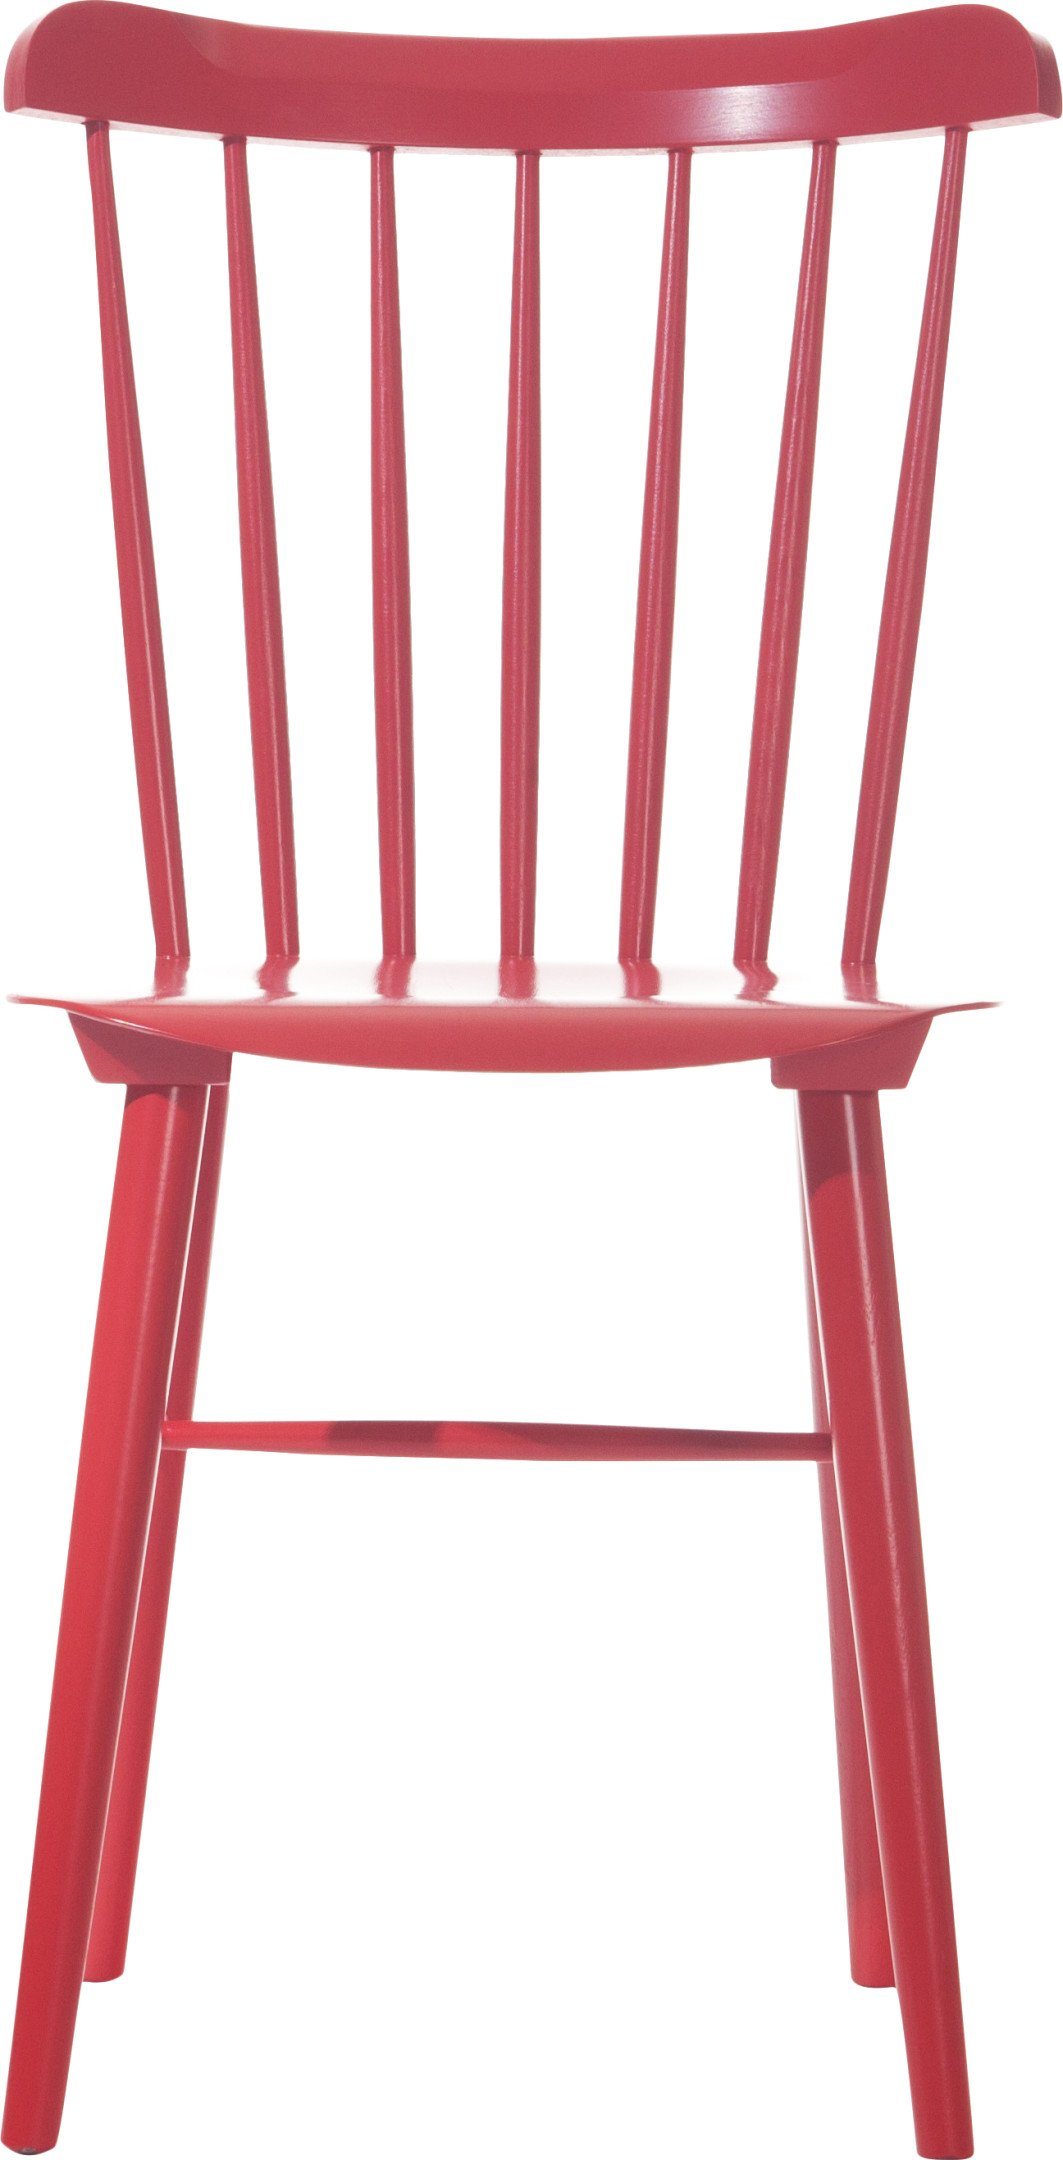 Ironica Chair Ruby Red beech, TON